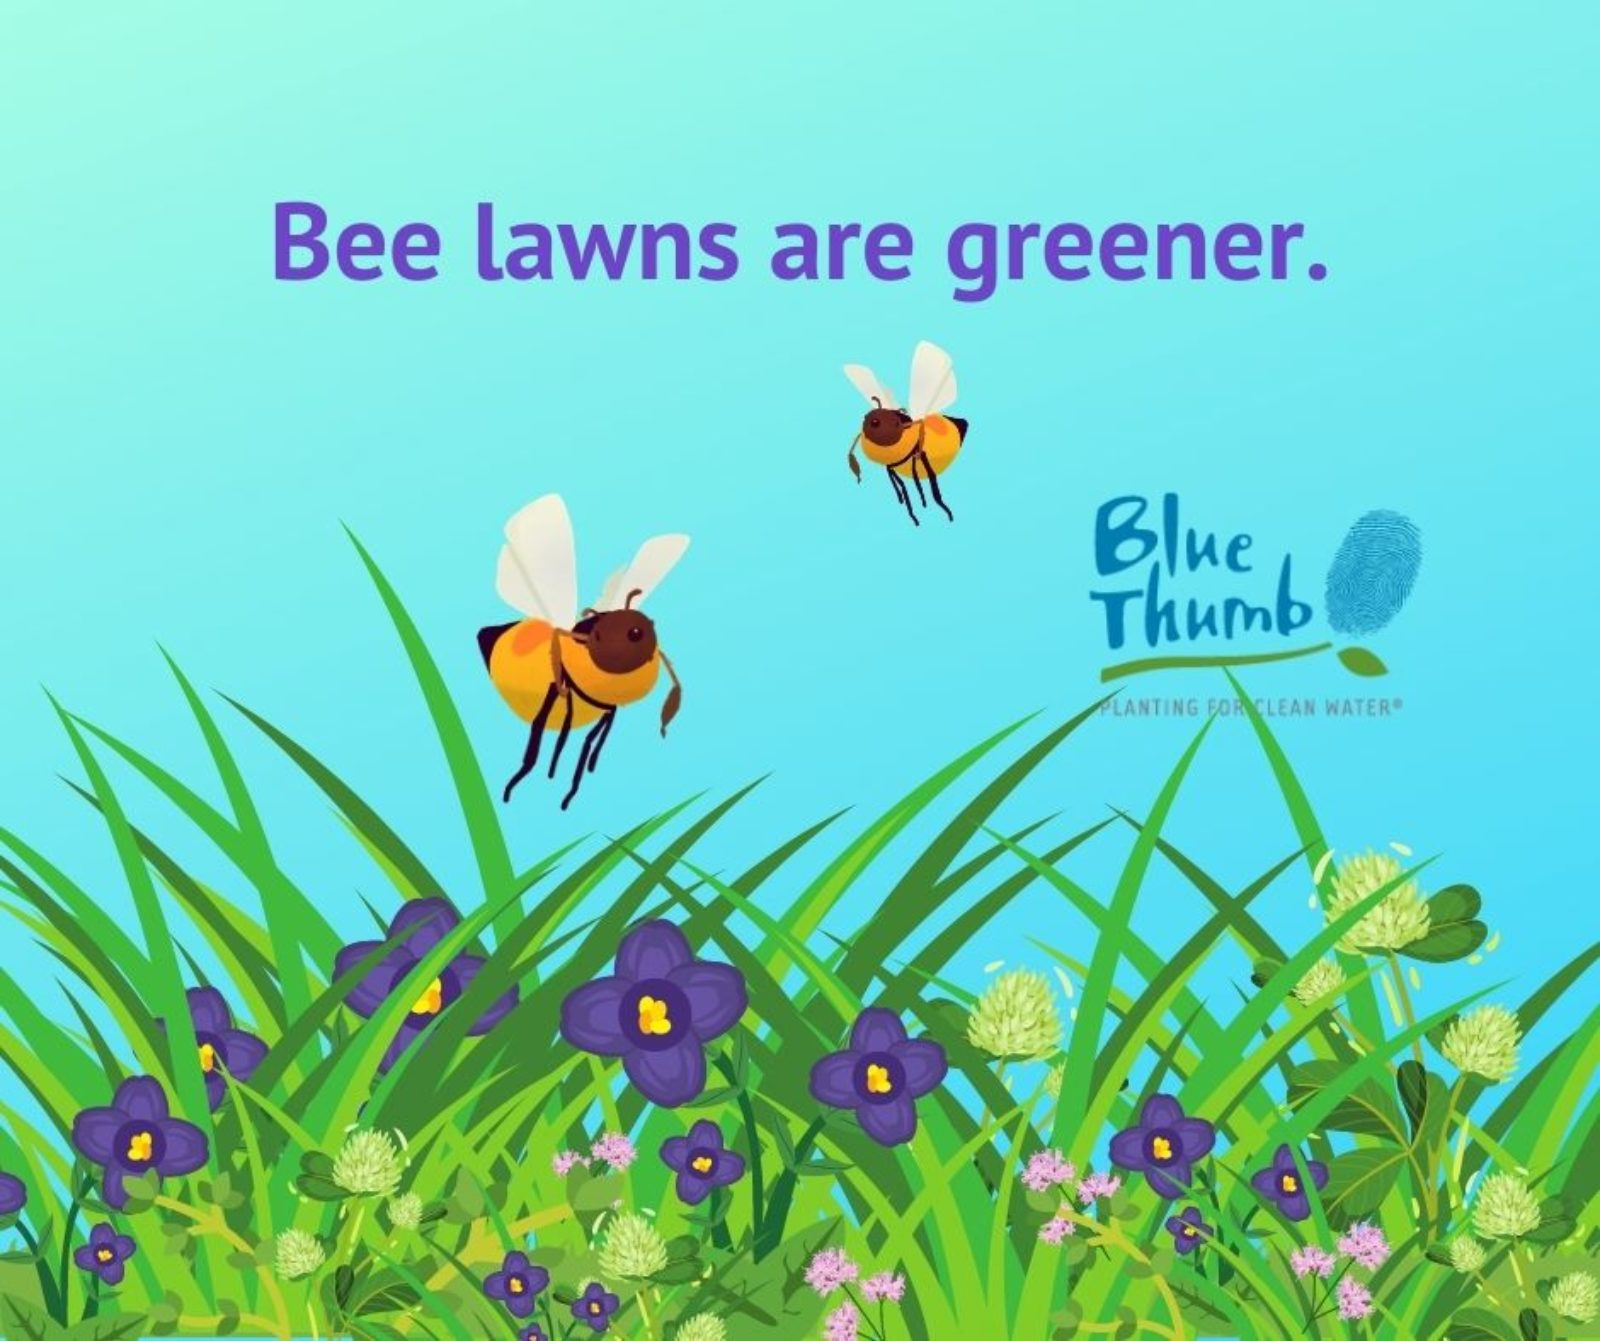 Bee lawns are greener. Photo of cartoon bees.